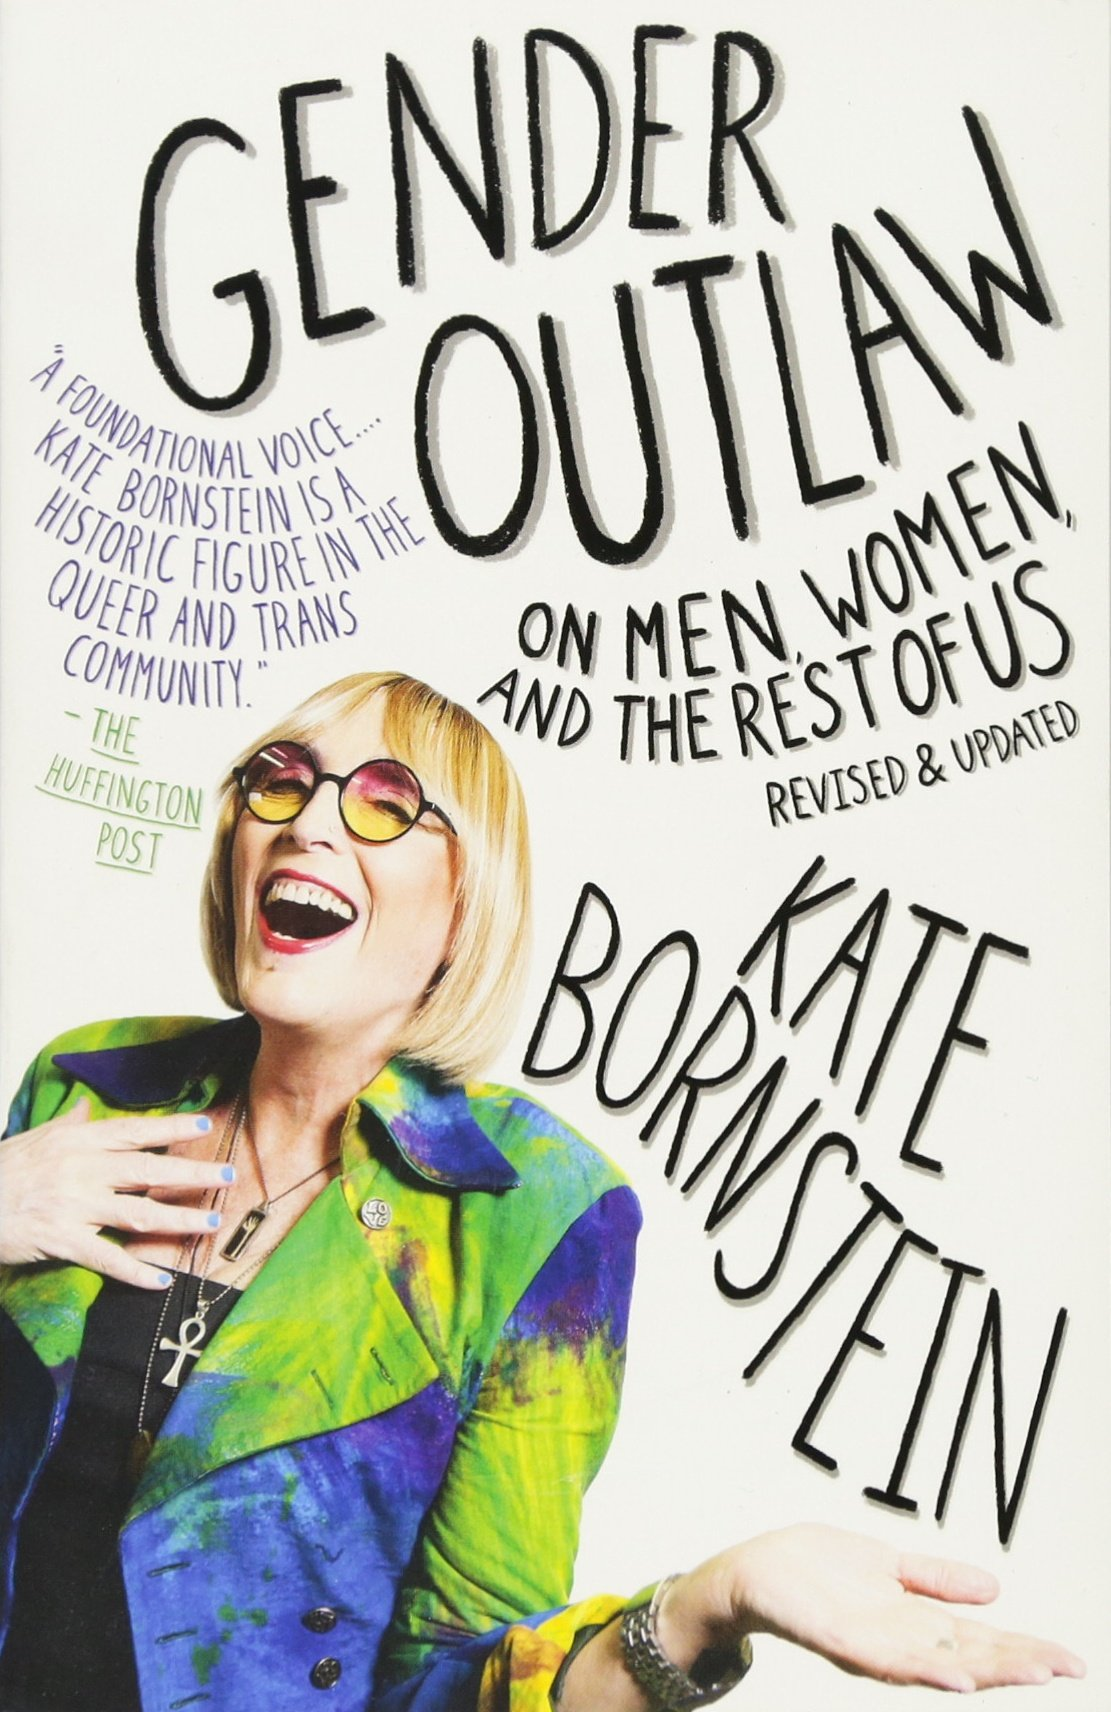 Amazon.com: Gender Outlaw: On Men, Women, and the Rest of Us ...